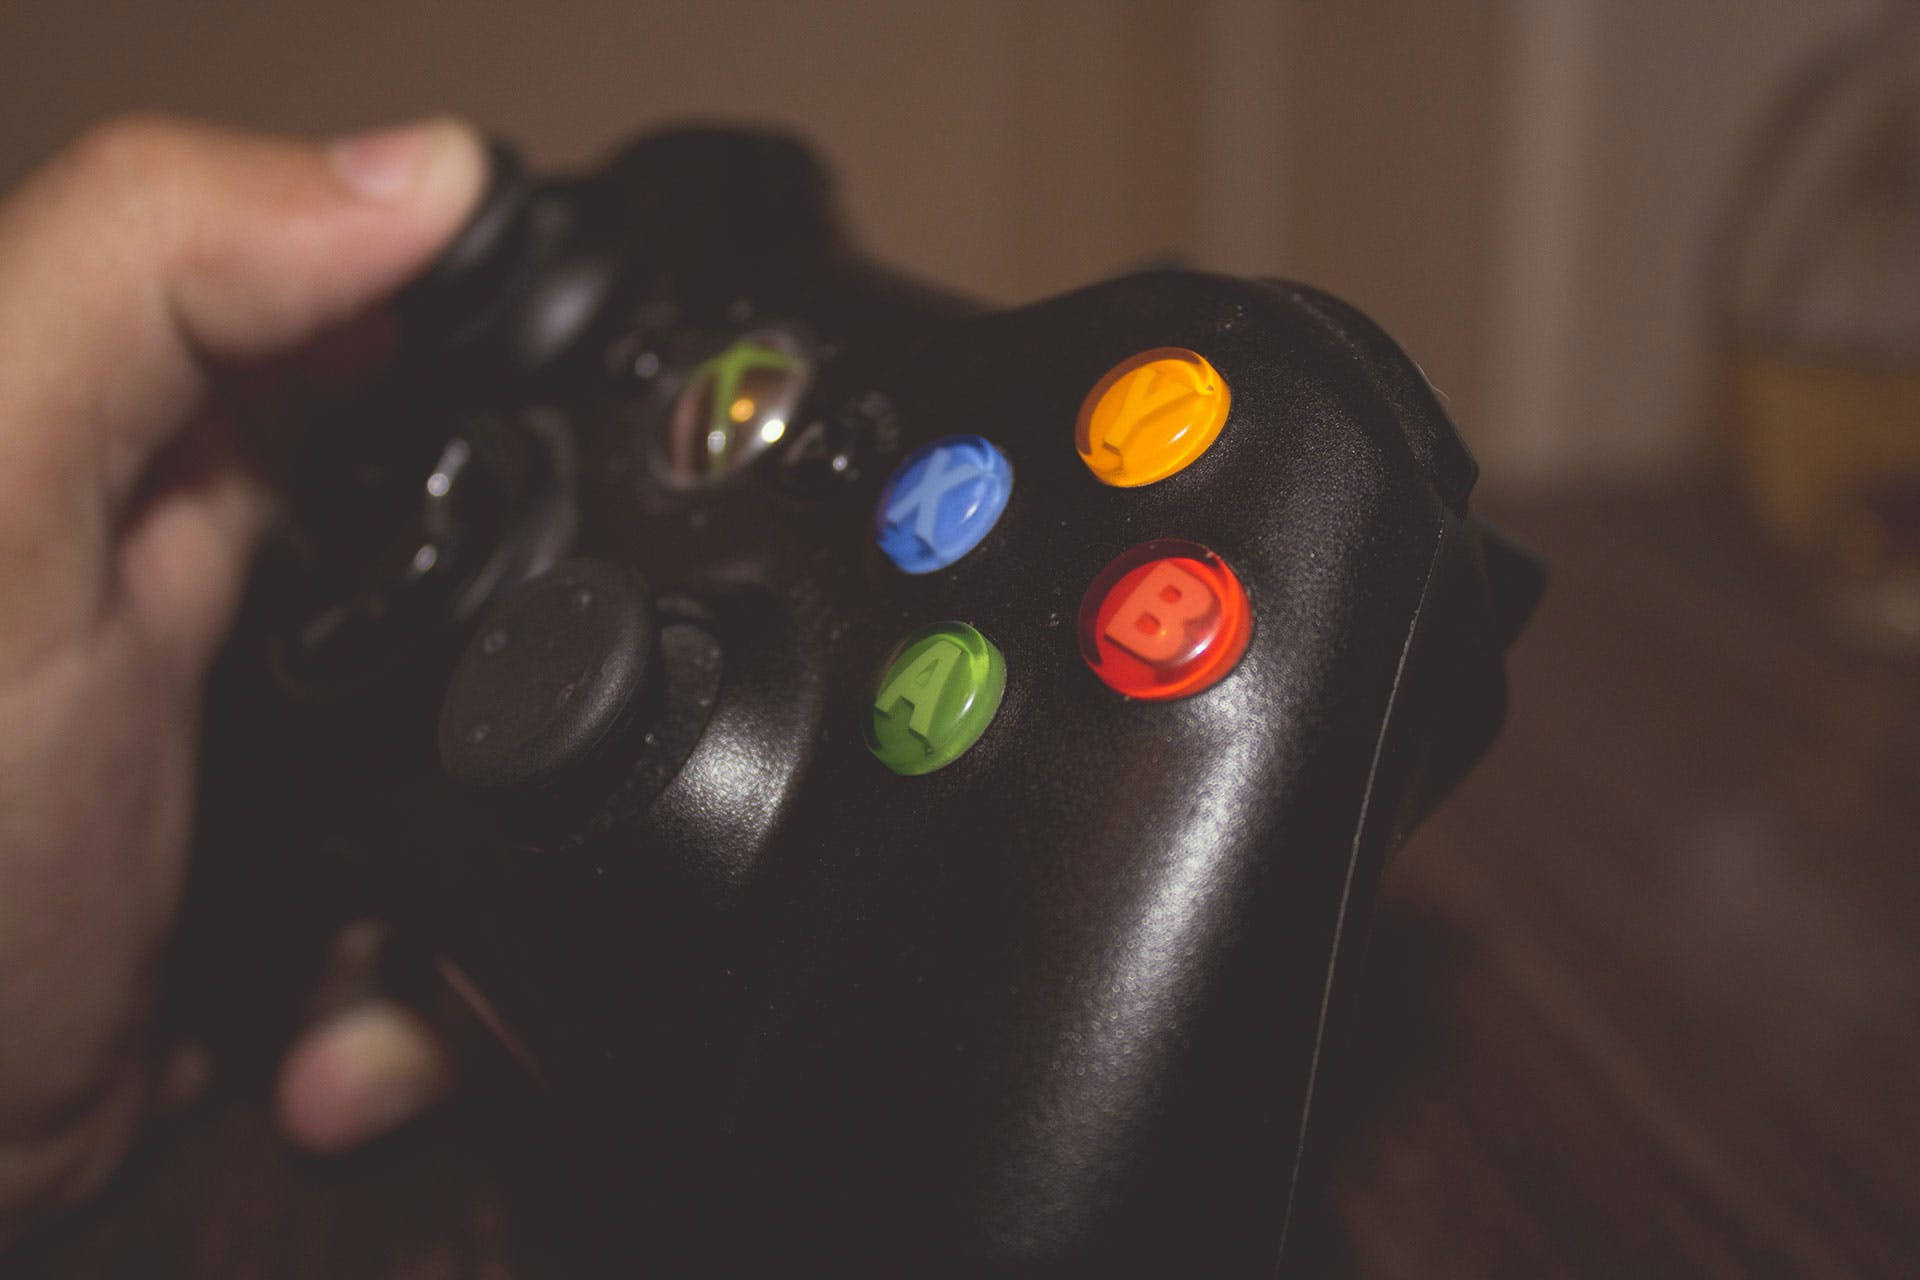 Free stock photo of controller, xbox, gaming, joystick